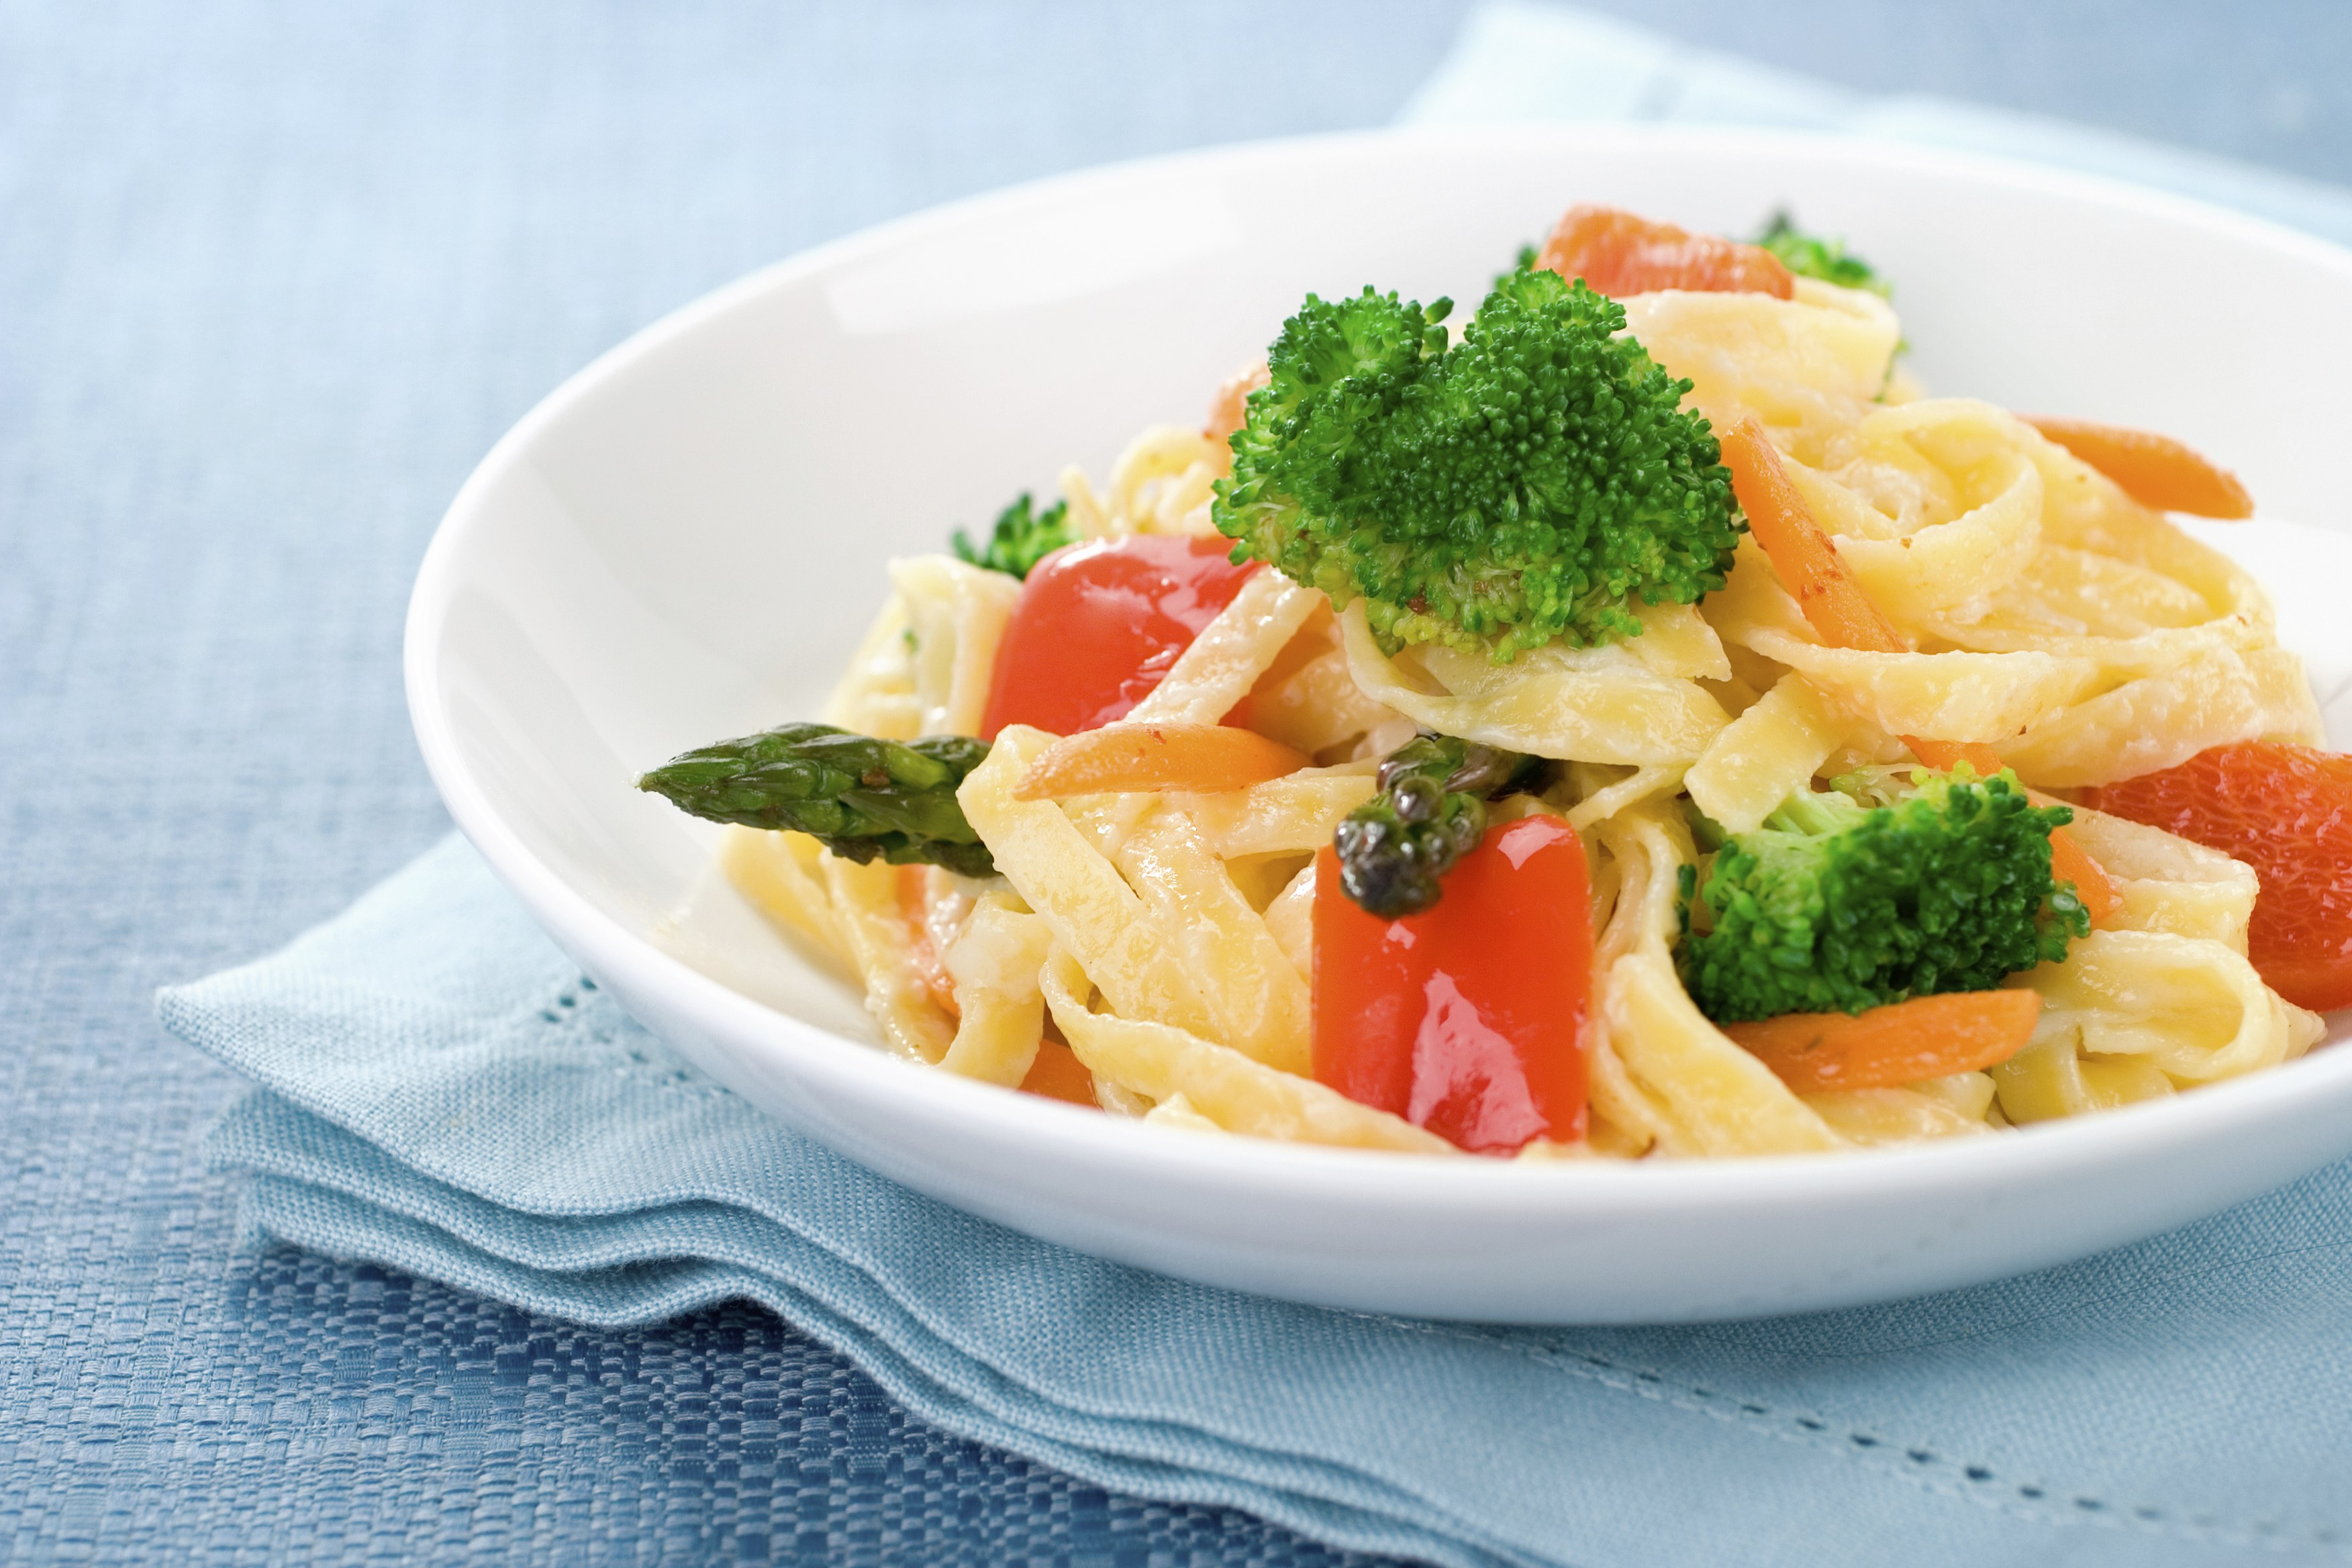 Delicious fresh vegetables tossed with fresh ribbon pasta make up this healthy and delectable Pasta Primavera.  Shallow dof